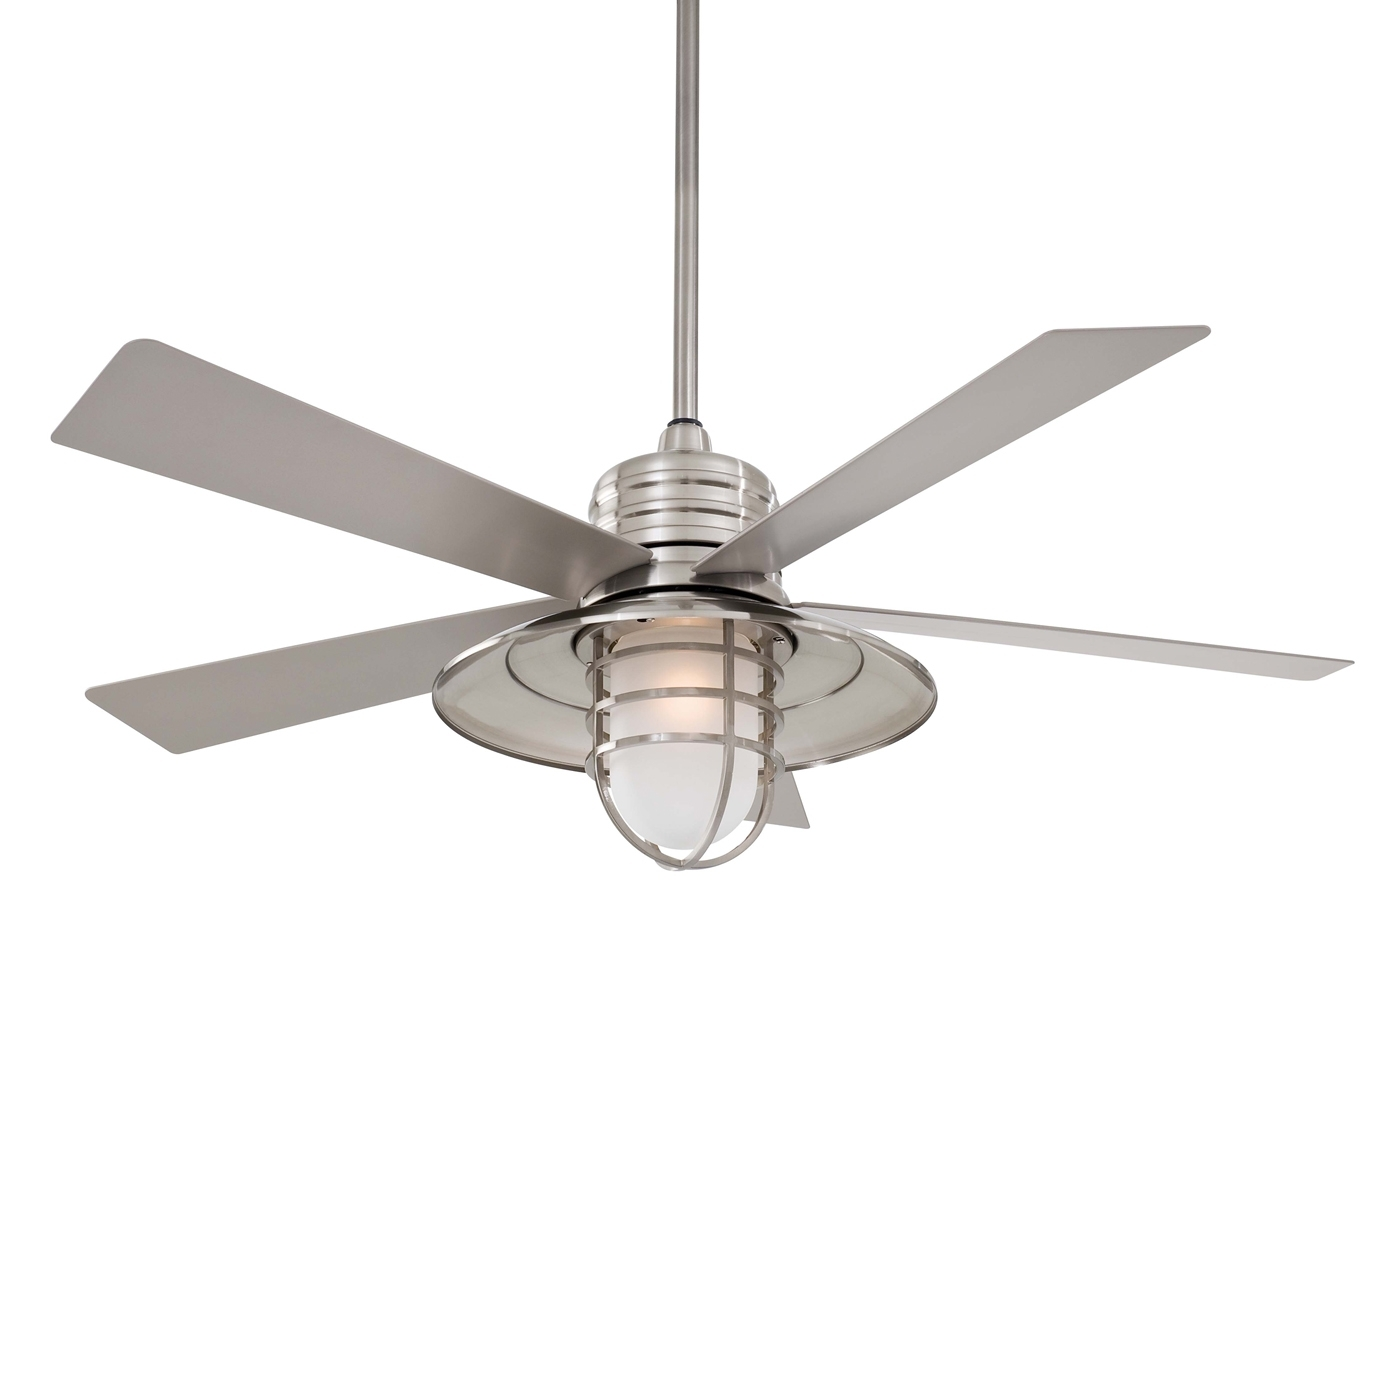 Most Recently Released Outdoor Ceiling Fans Wet Rated With Light – Outdoor Lighting Ideas Regarding Outdoor Ceiling Fans With Lights Damp Rated (View 10 of 20)